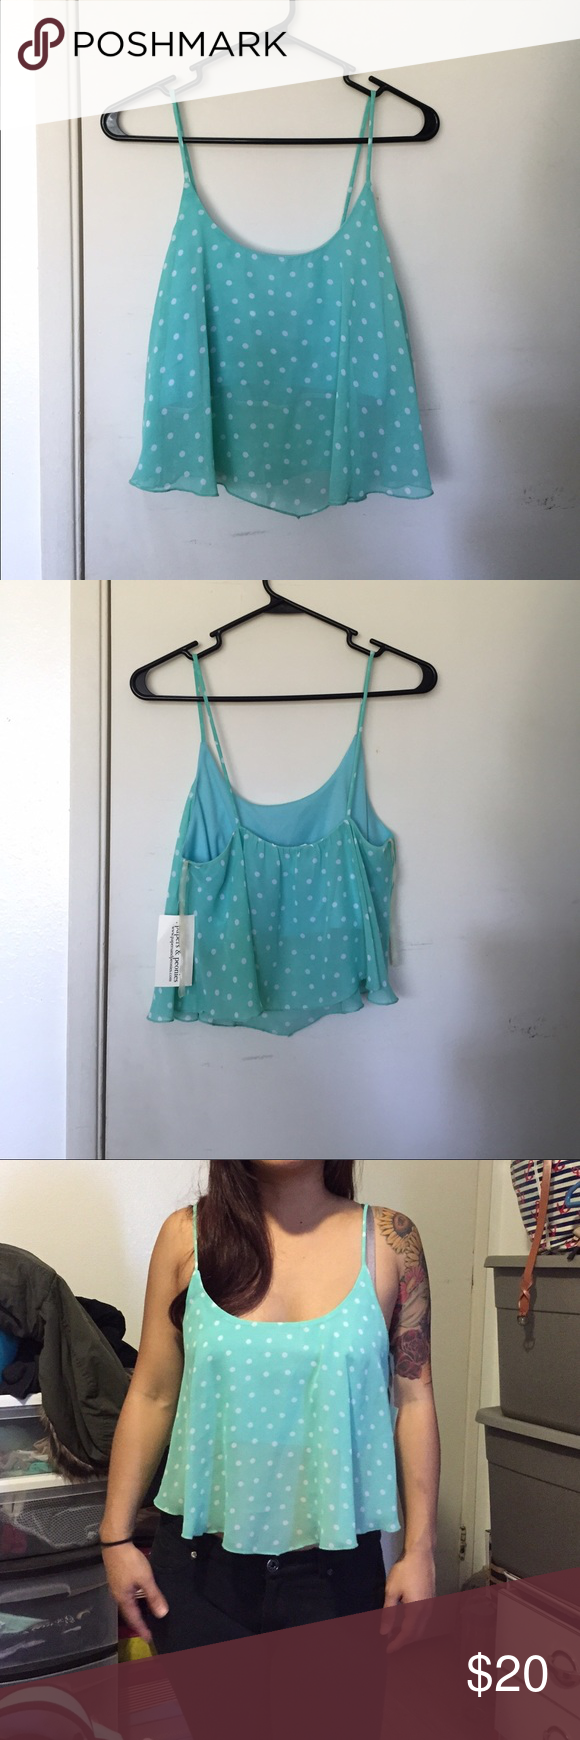 New mint and white polka dotted crop top NWT mint and white polka dotted crop top, size large but fits like a medium. Straps are not adjustable. Material: 100% polyester Tops Crop Tops